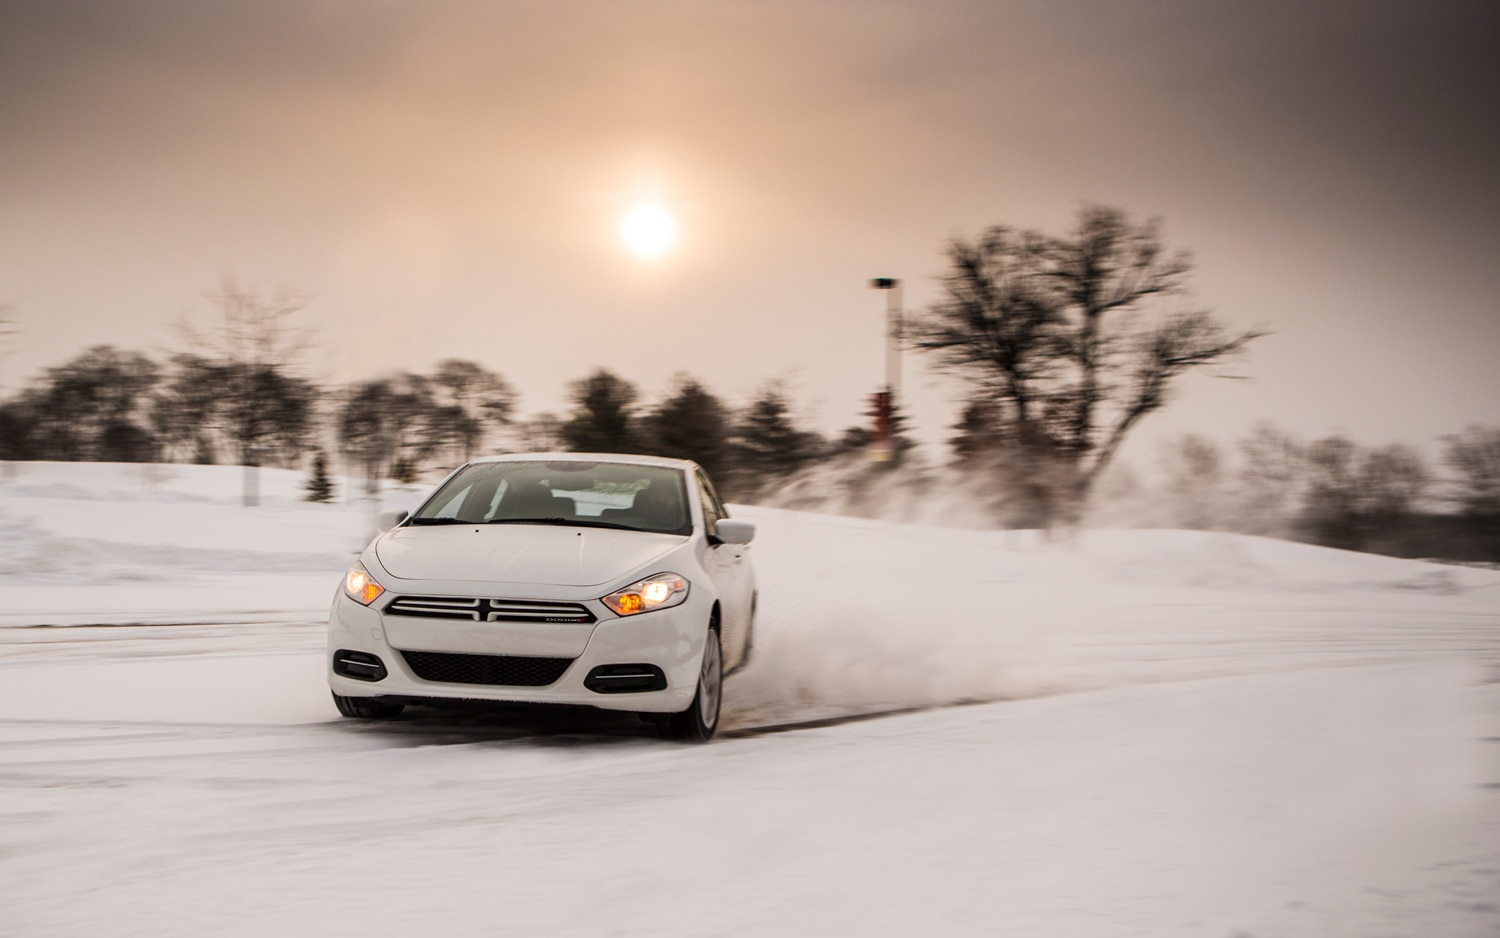 2013 Dodge Dart SXT Front View1